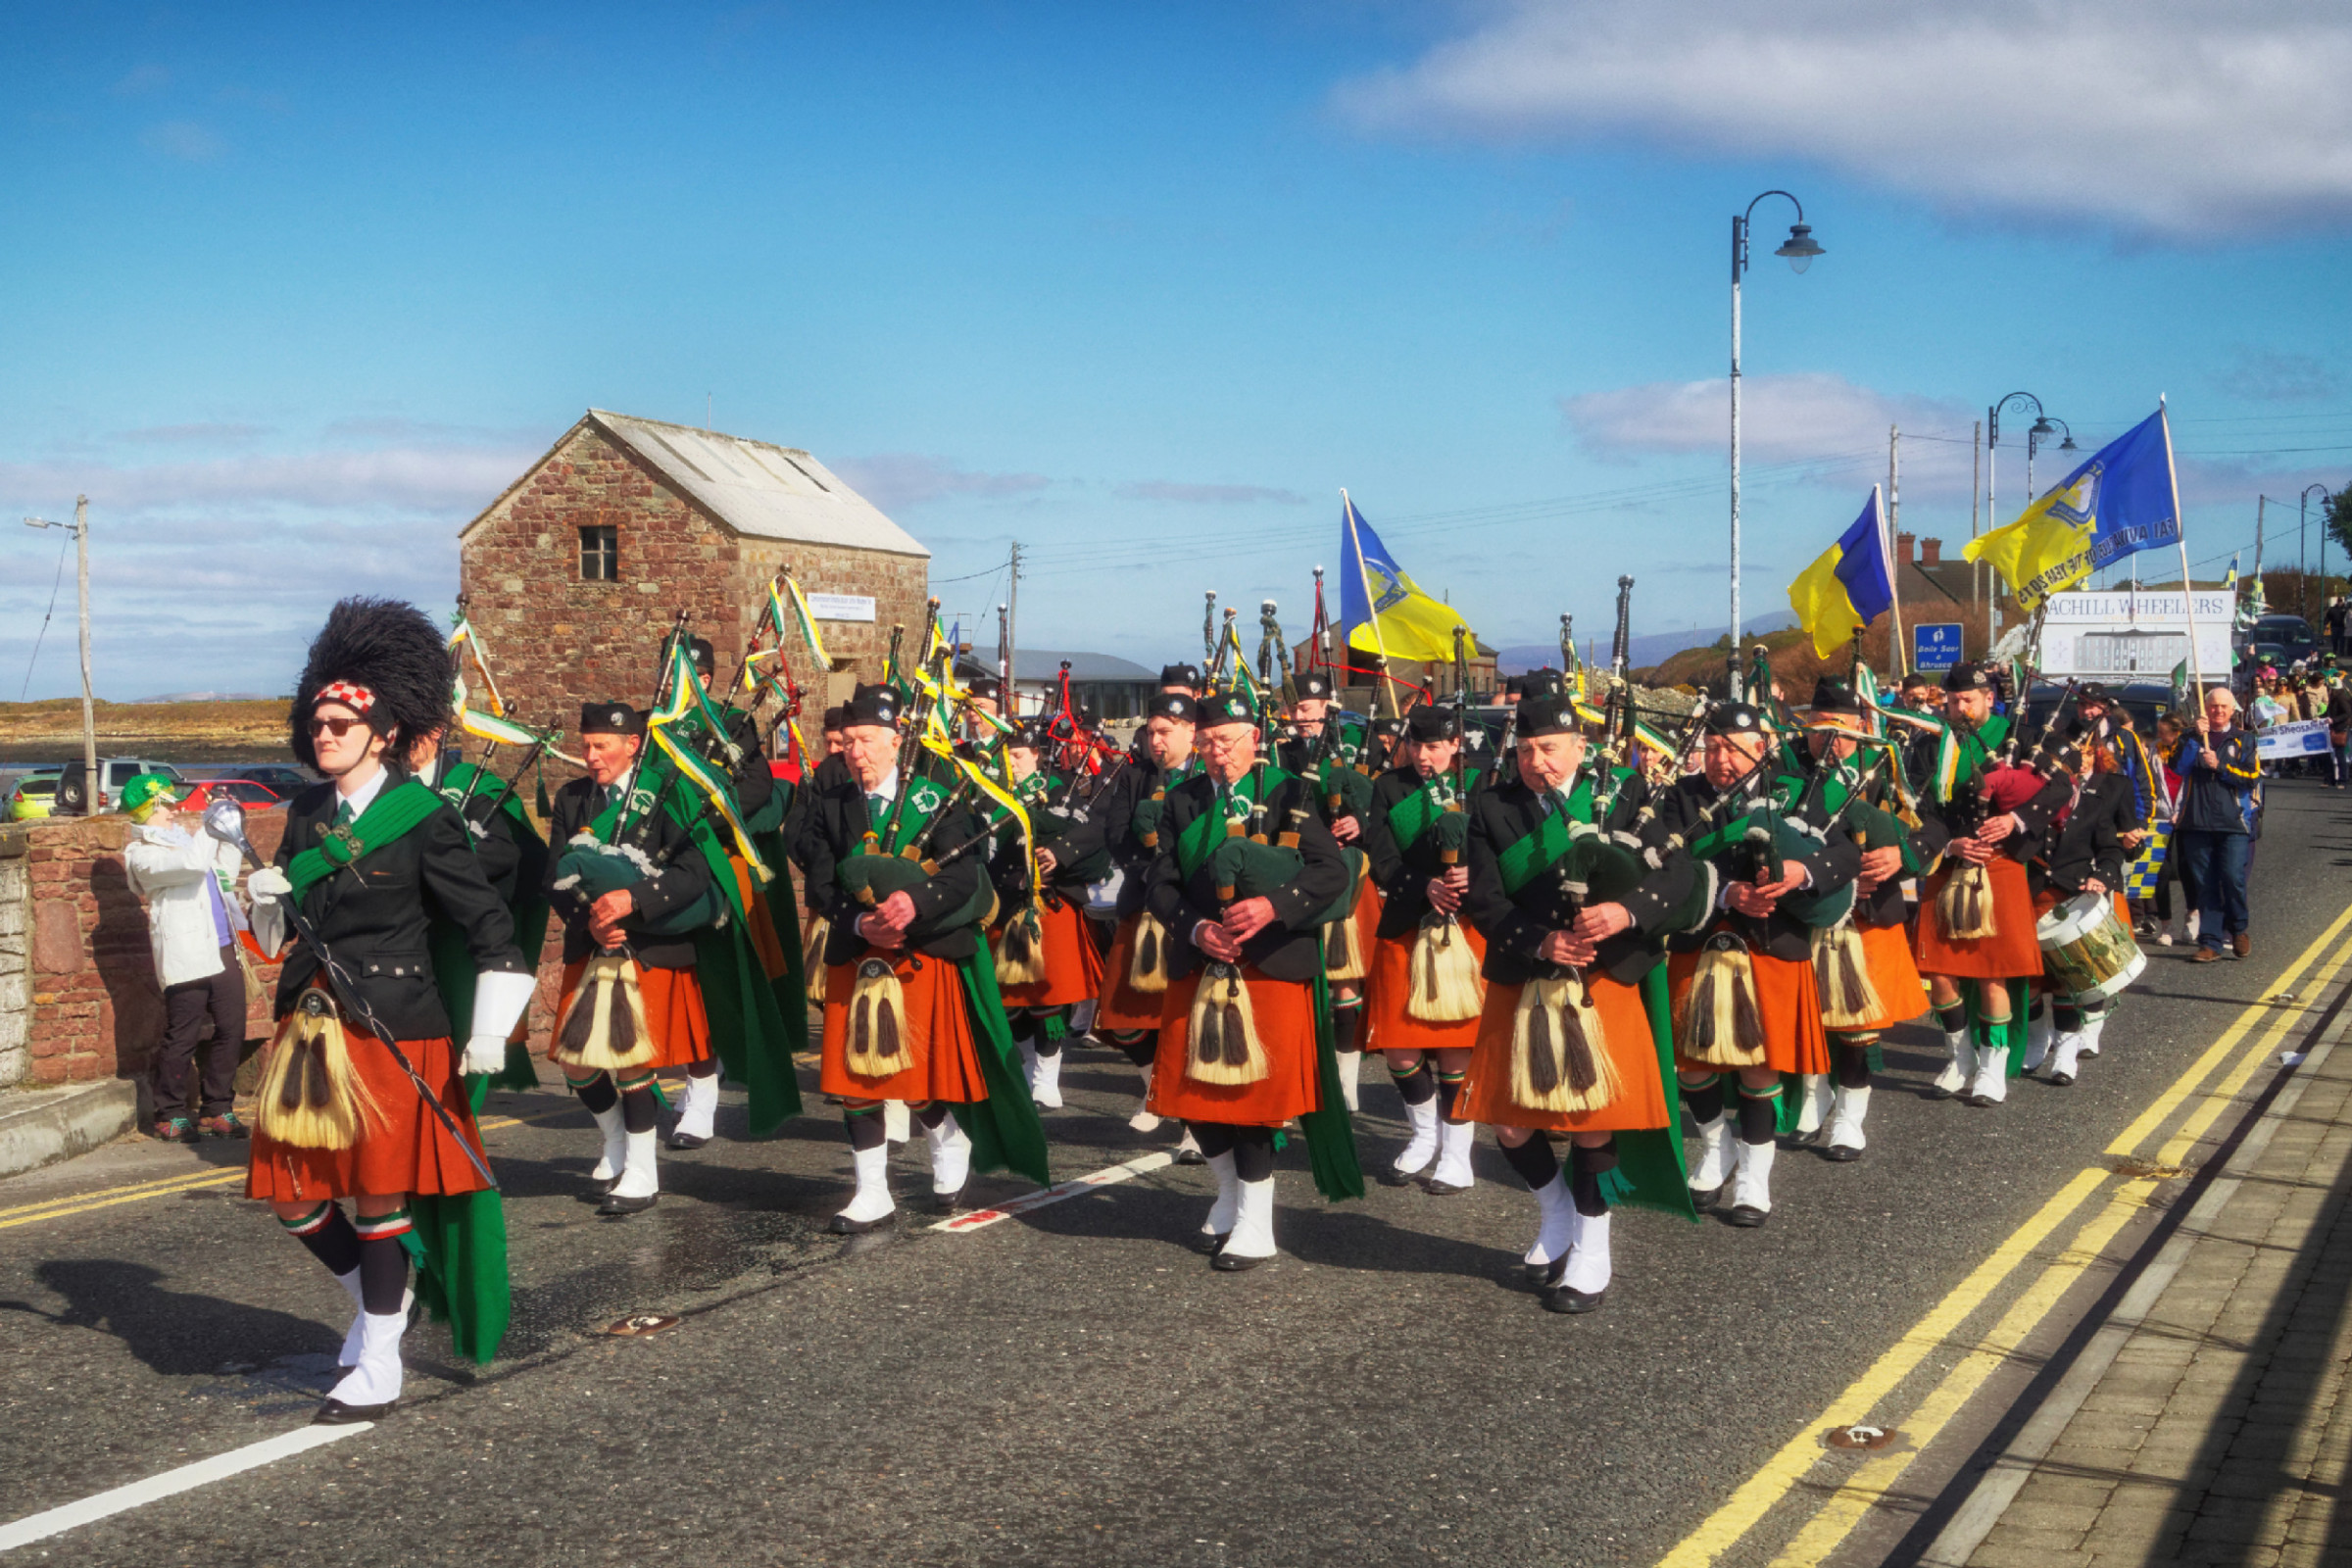 20160320125713-ie-achill-sound_parade-_DxO_13in_DxO96